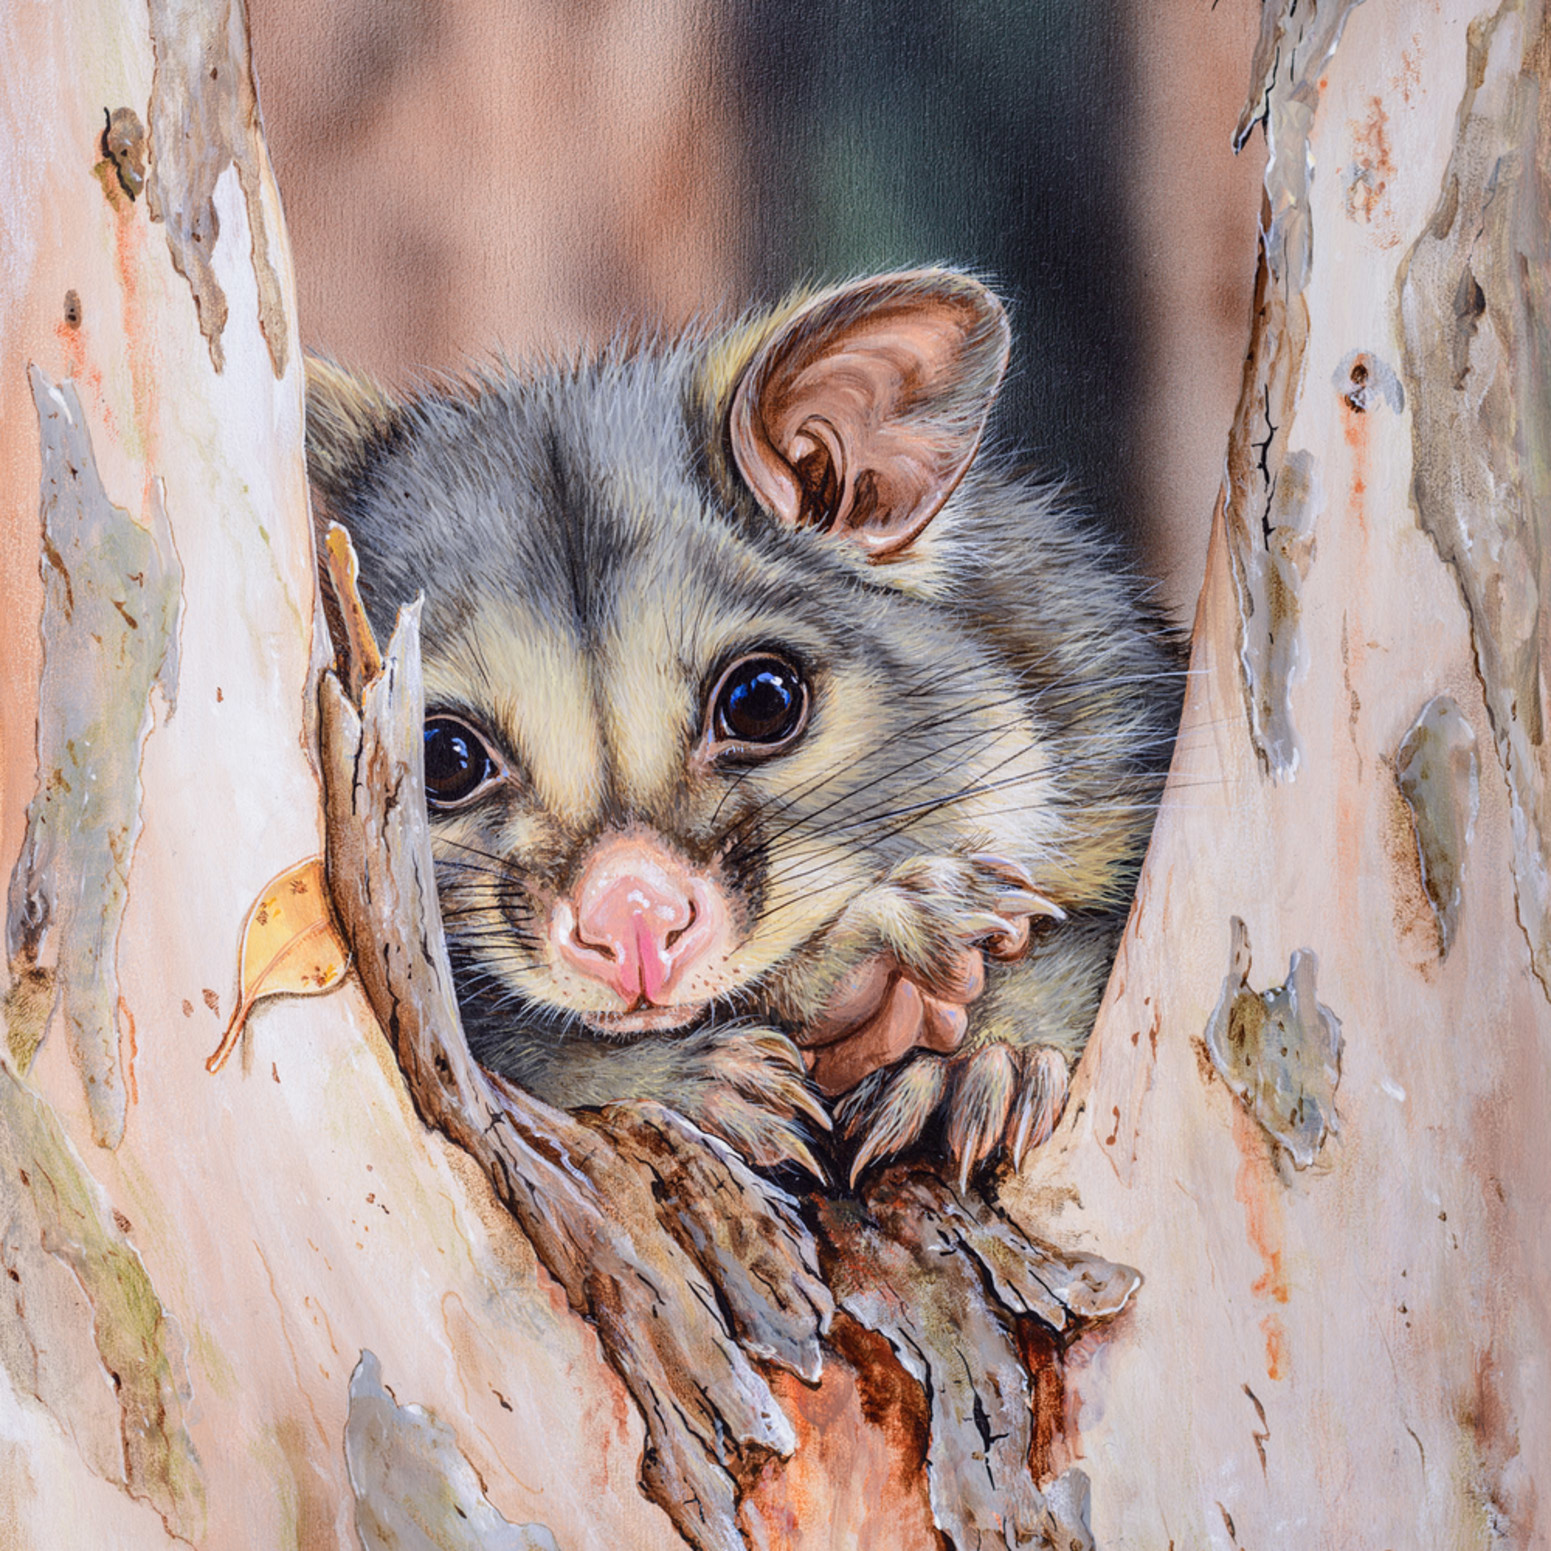 The favourite tree brushtail possum in tree fork natalie jane parker xs4ana